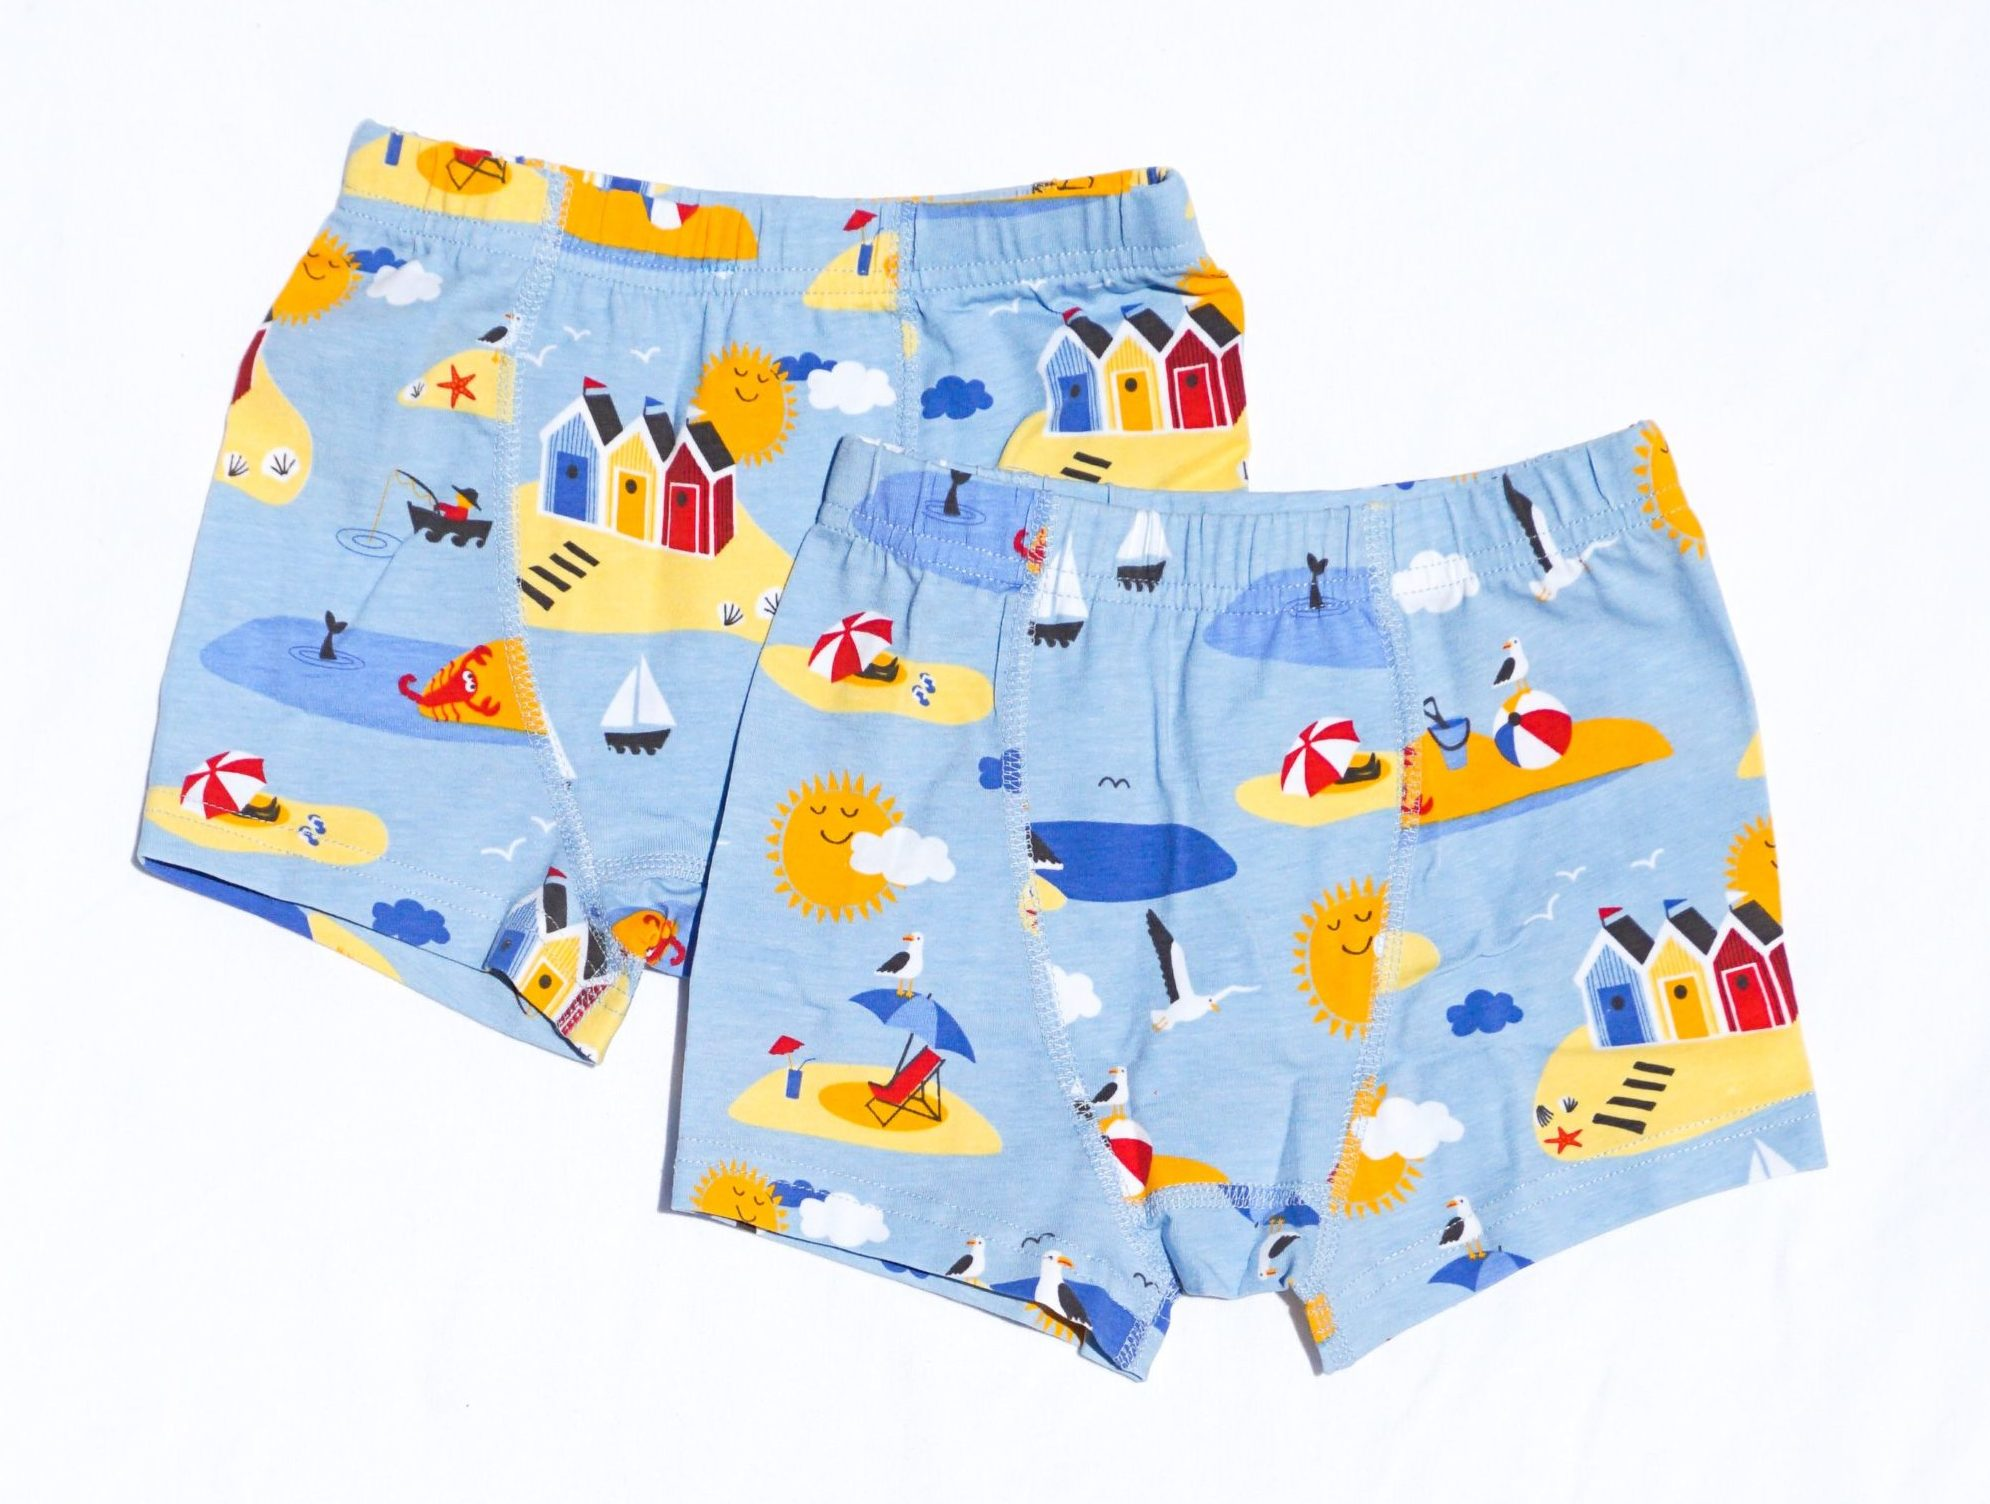 JNY 2-pack boxers Beachlife